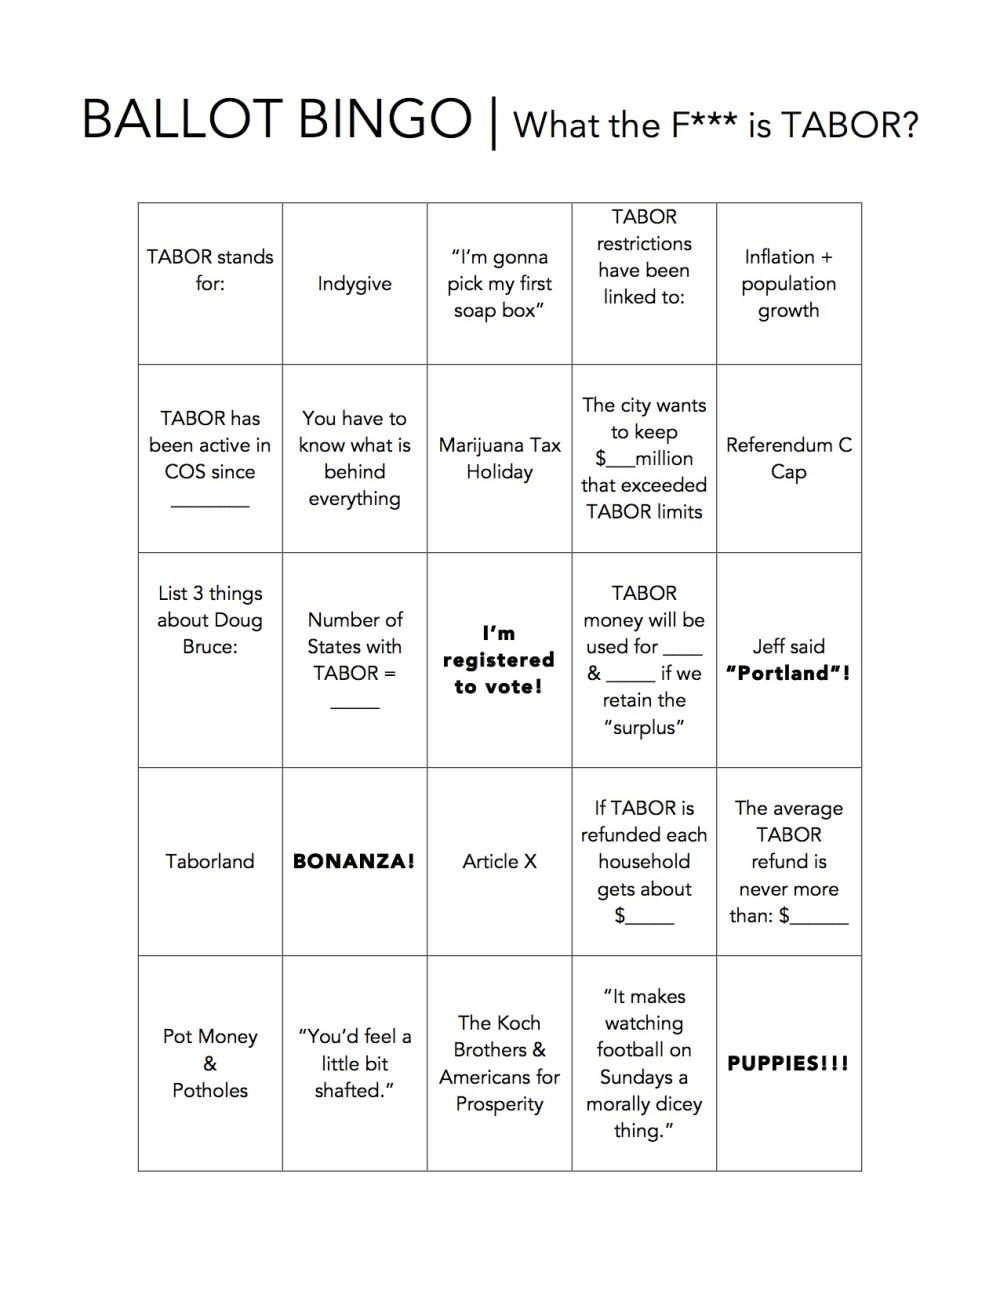 BALLOT BINGO - What the F is TABOR